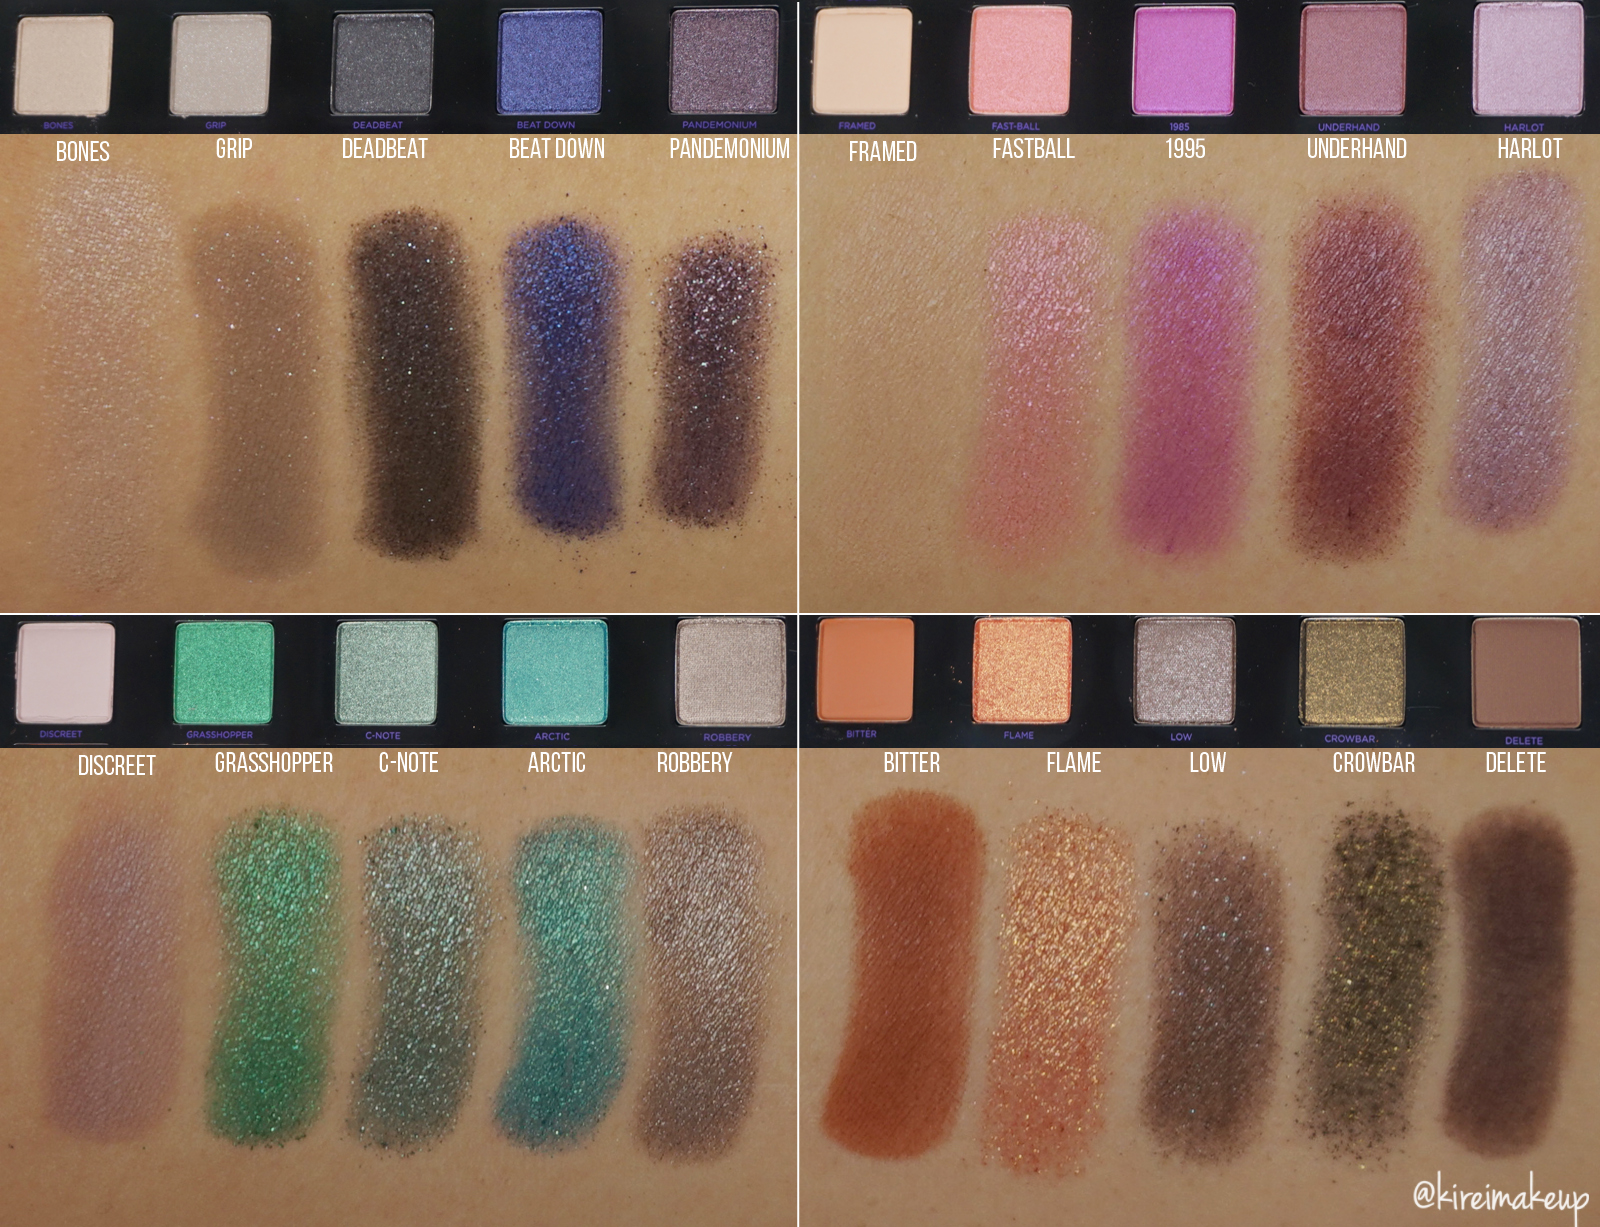 ud vice 4 swatches